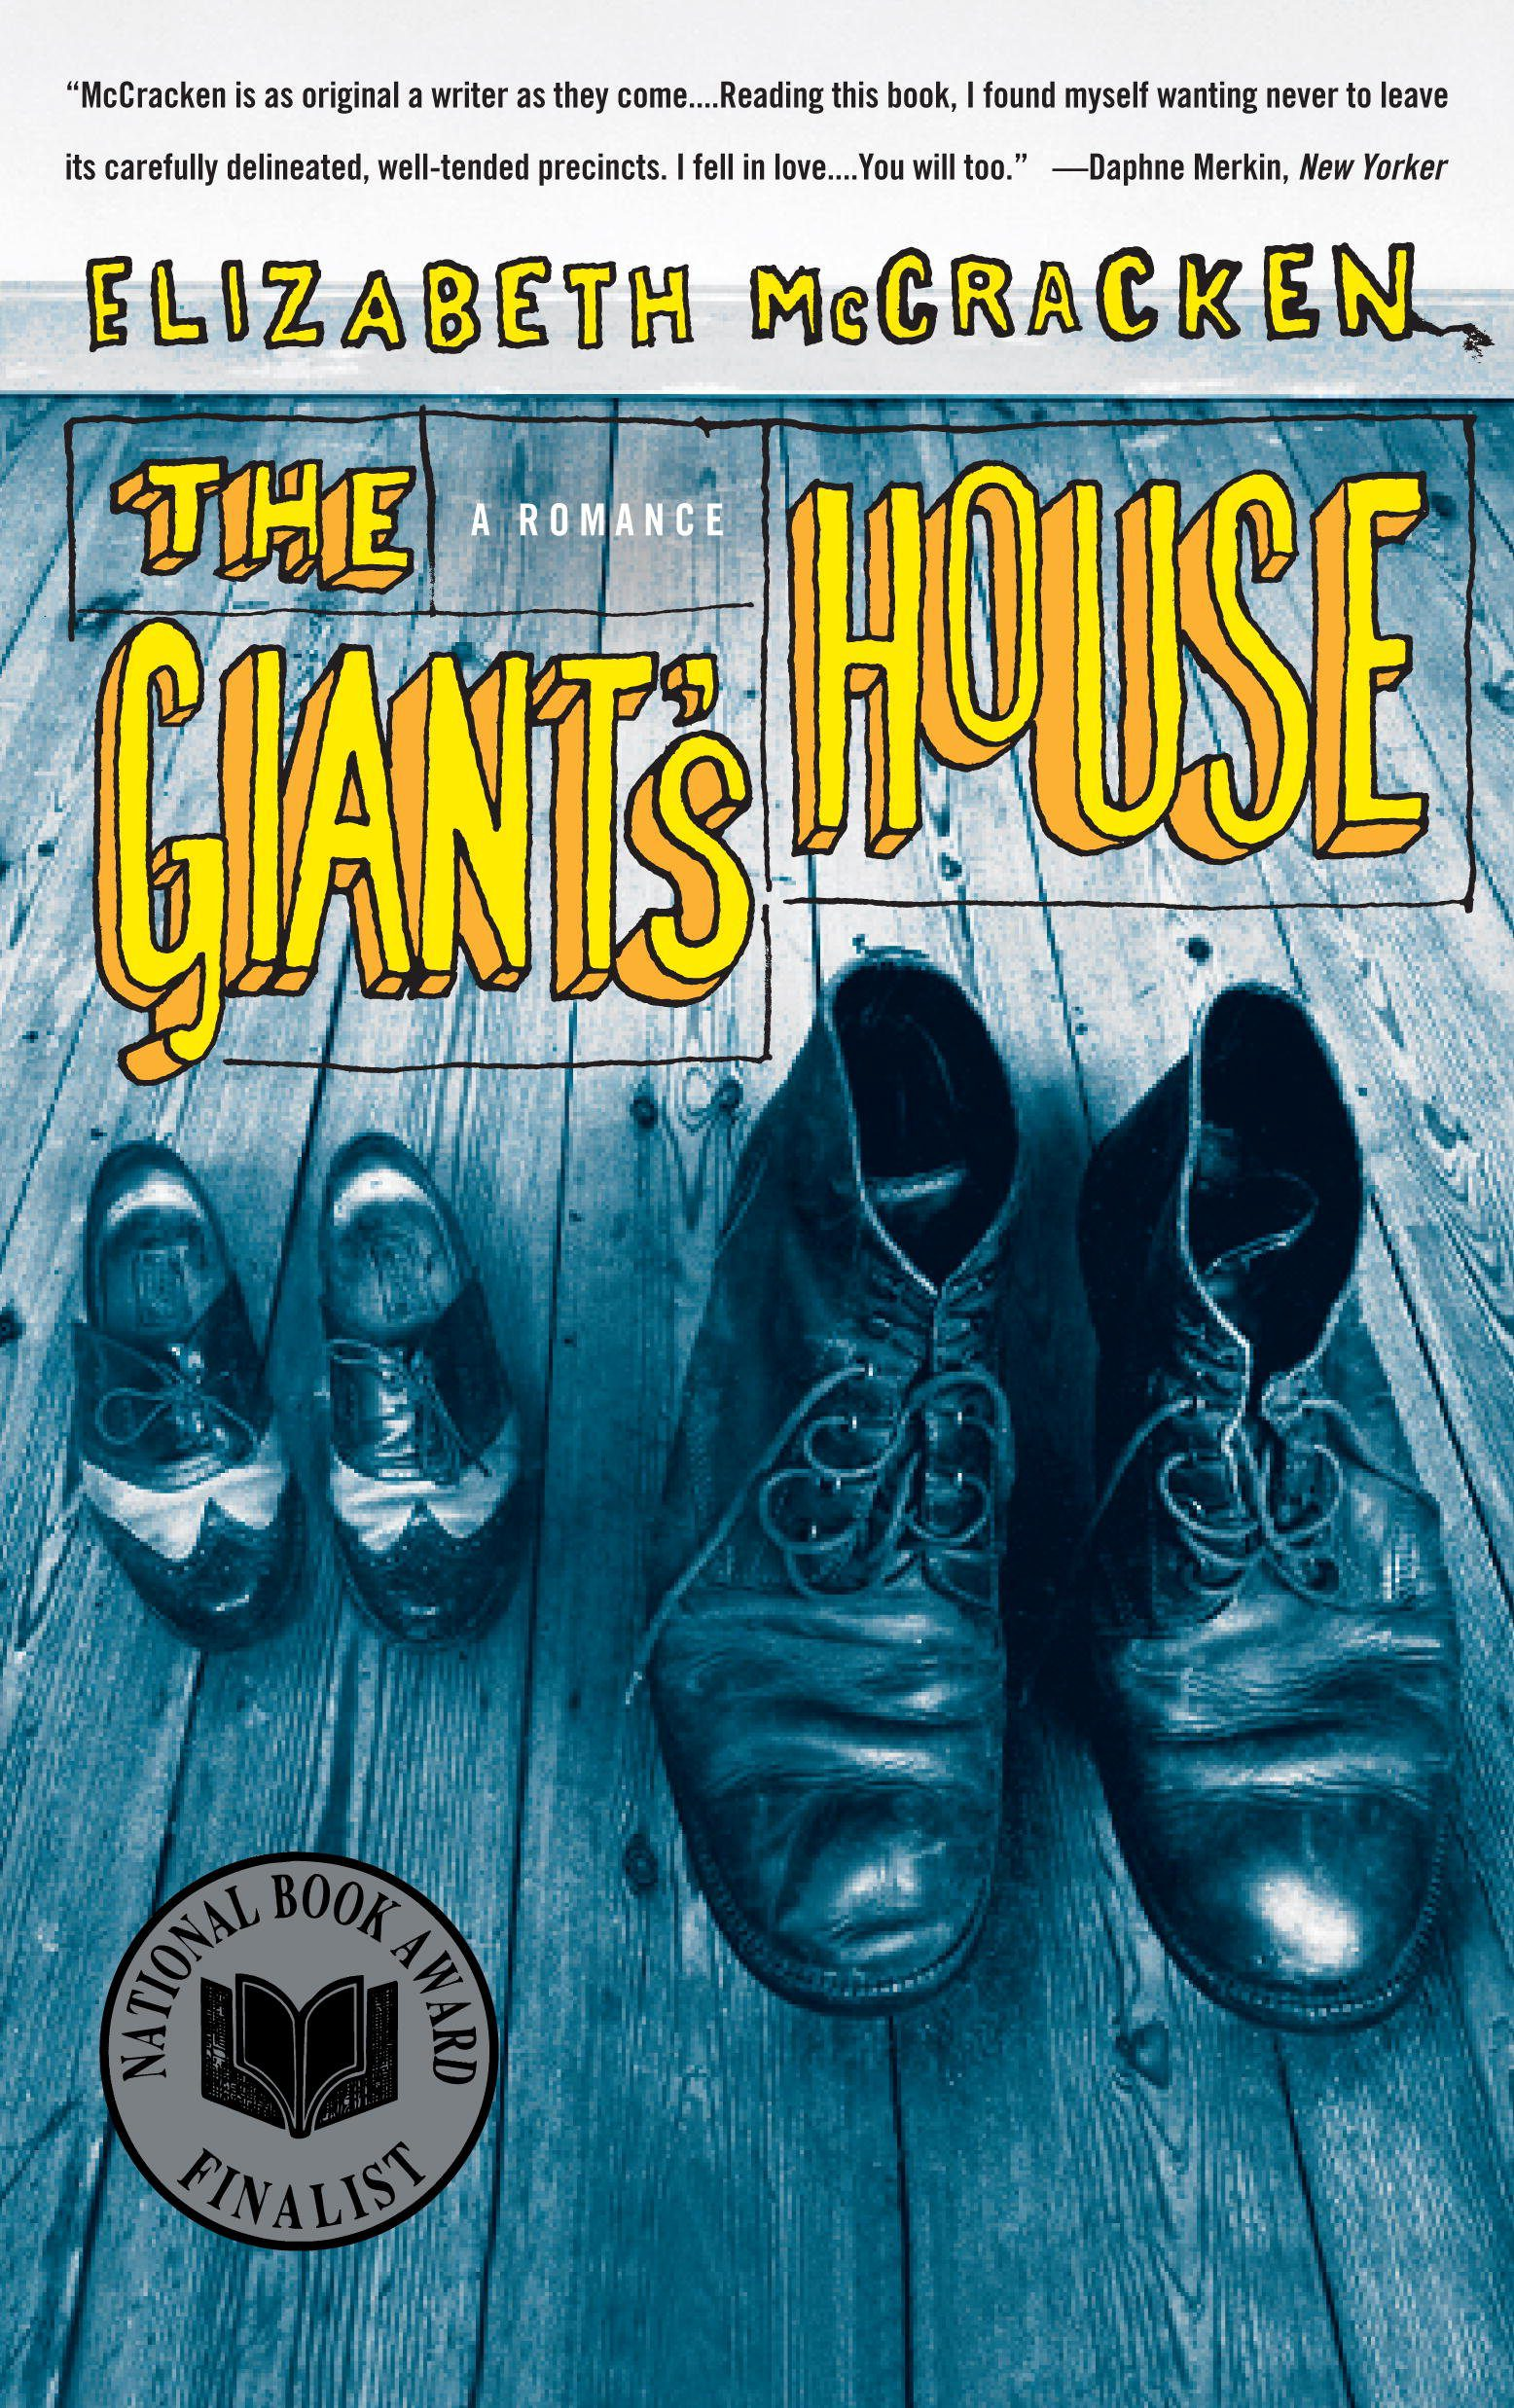 The Giant's House by Elizabeth McCracken book cover